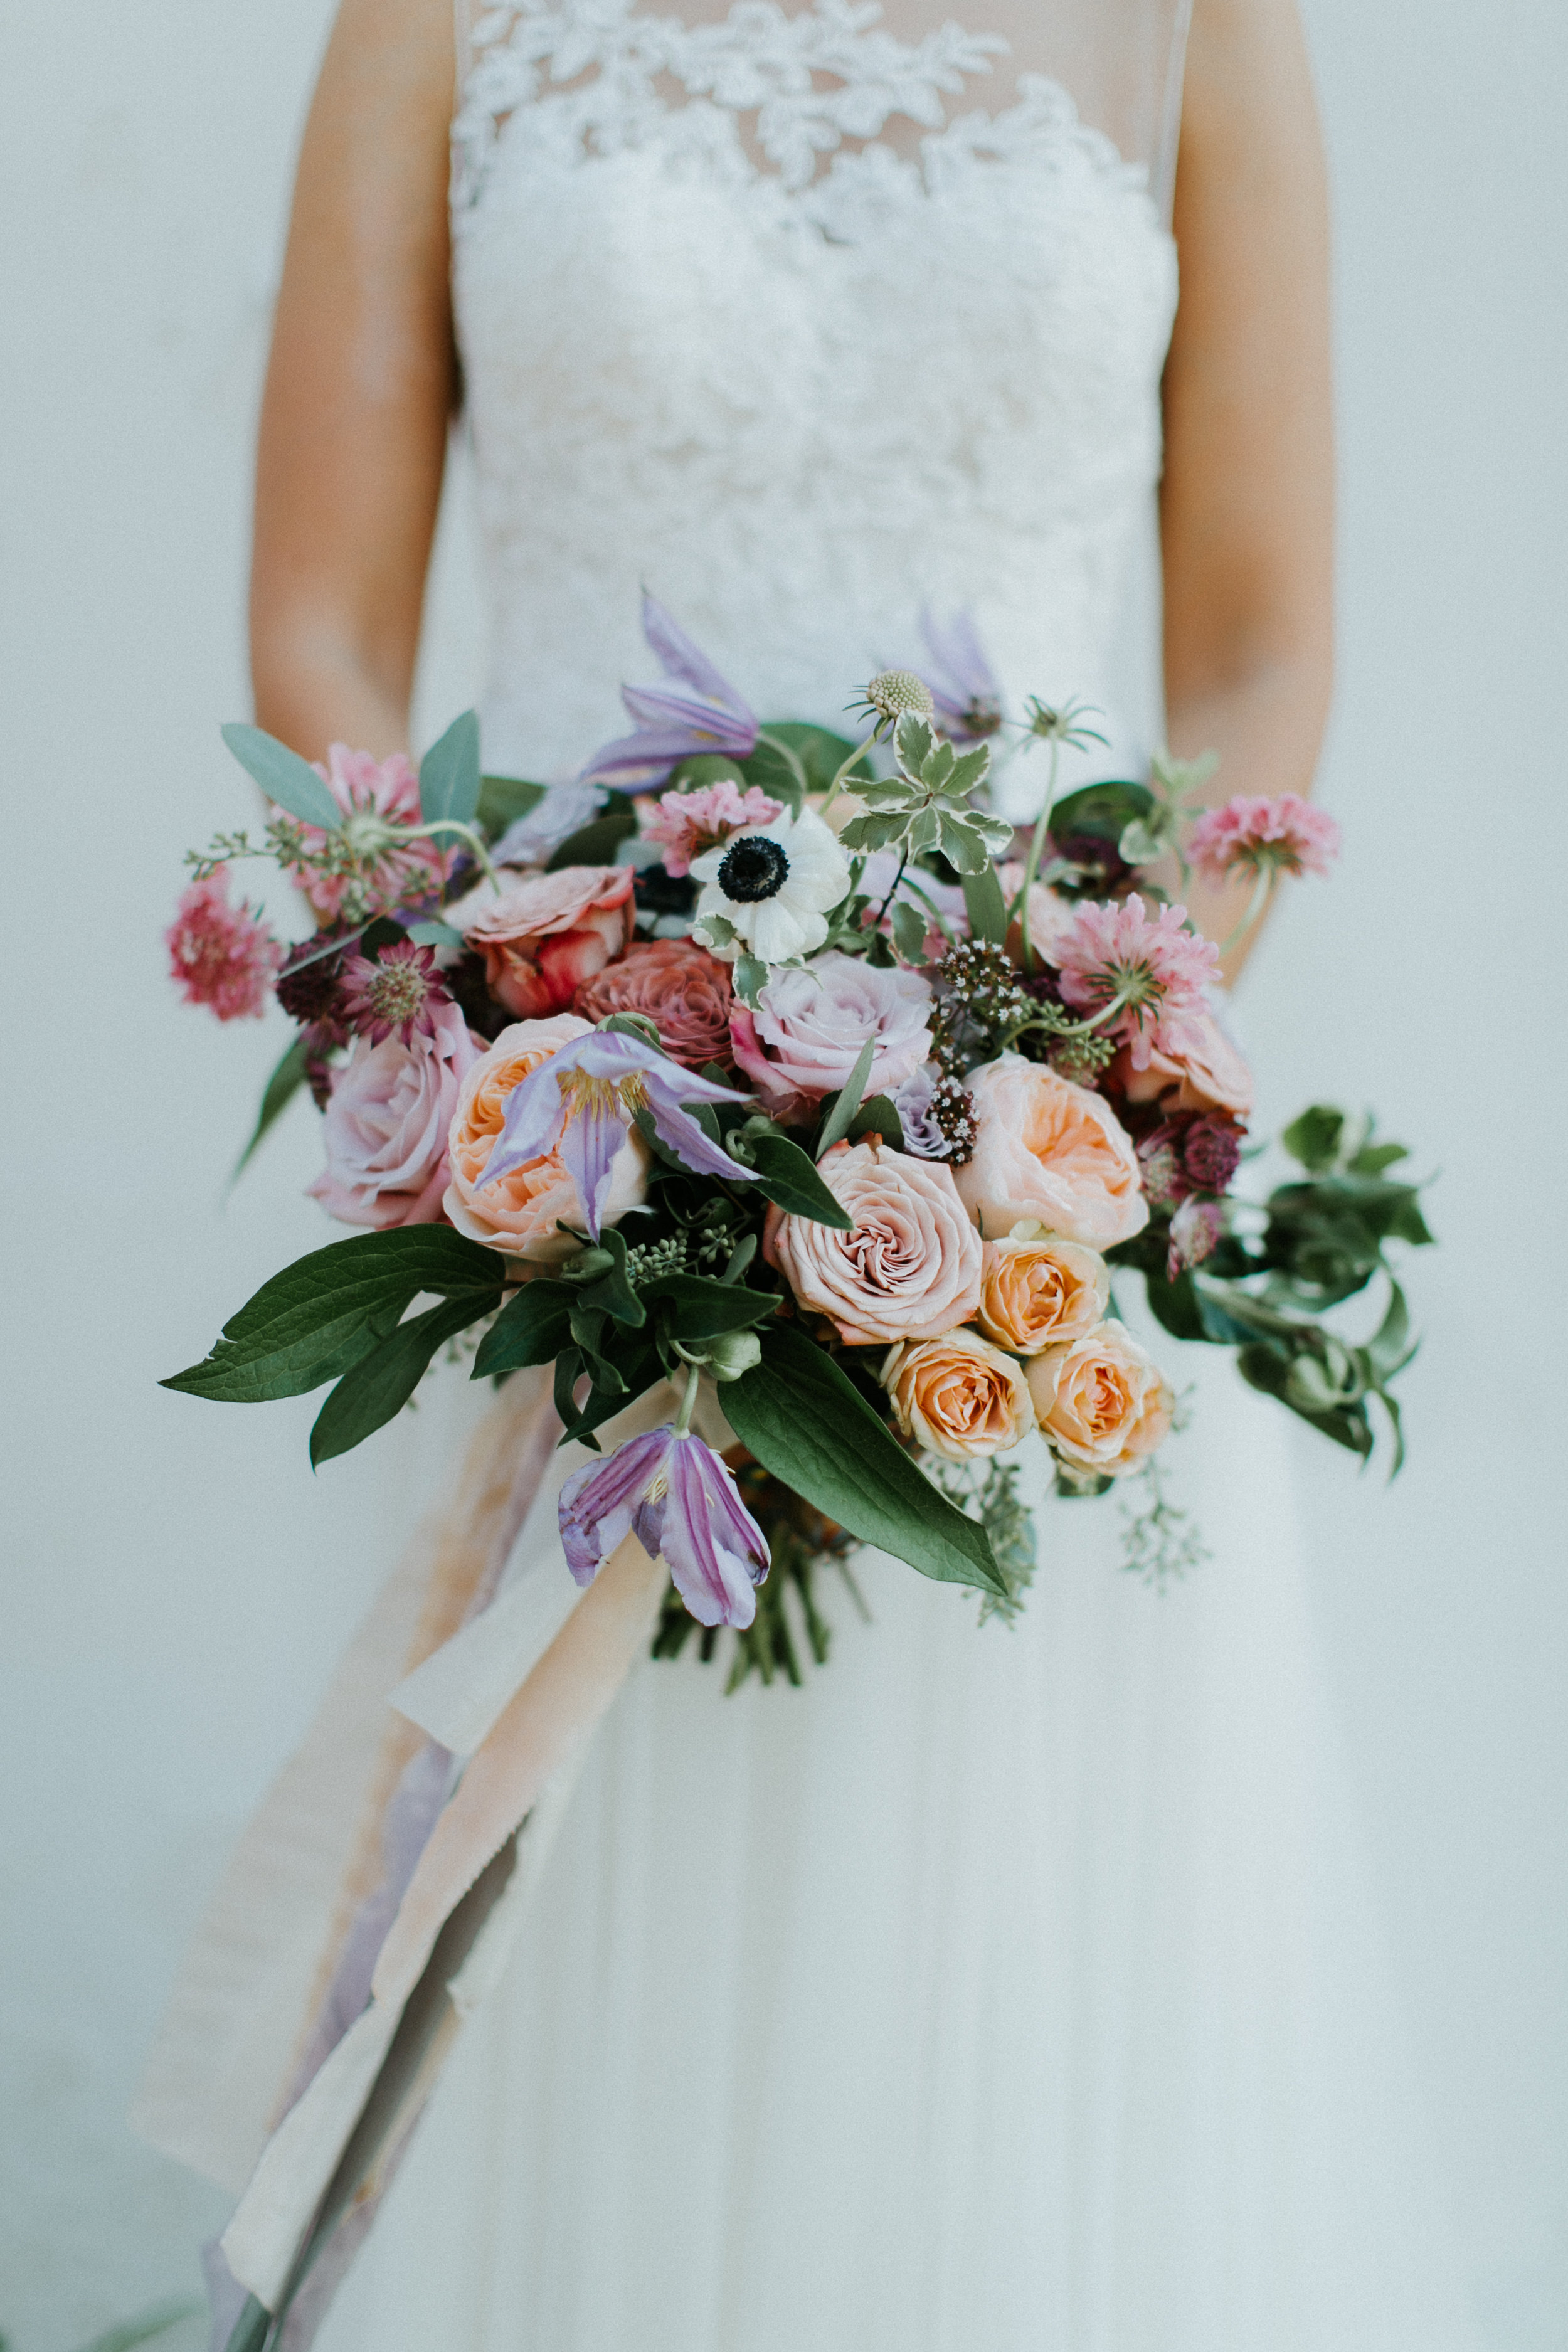 Lush garden style bridal bouquet with clematis, garden rose, anemones, astrantia and scabiosa in shades of lavendar, mauve and peach